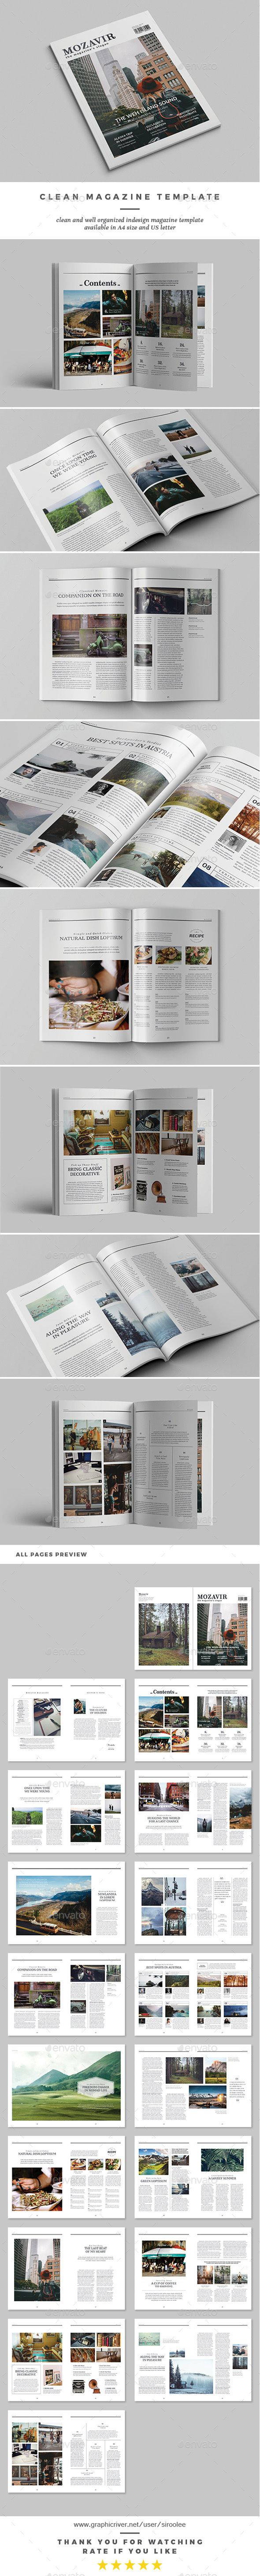 best yearbook images on pinterest yearbook design graph